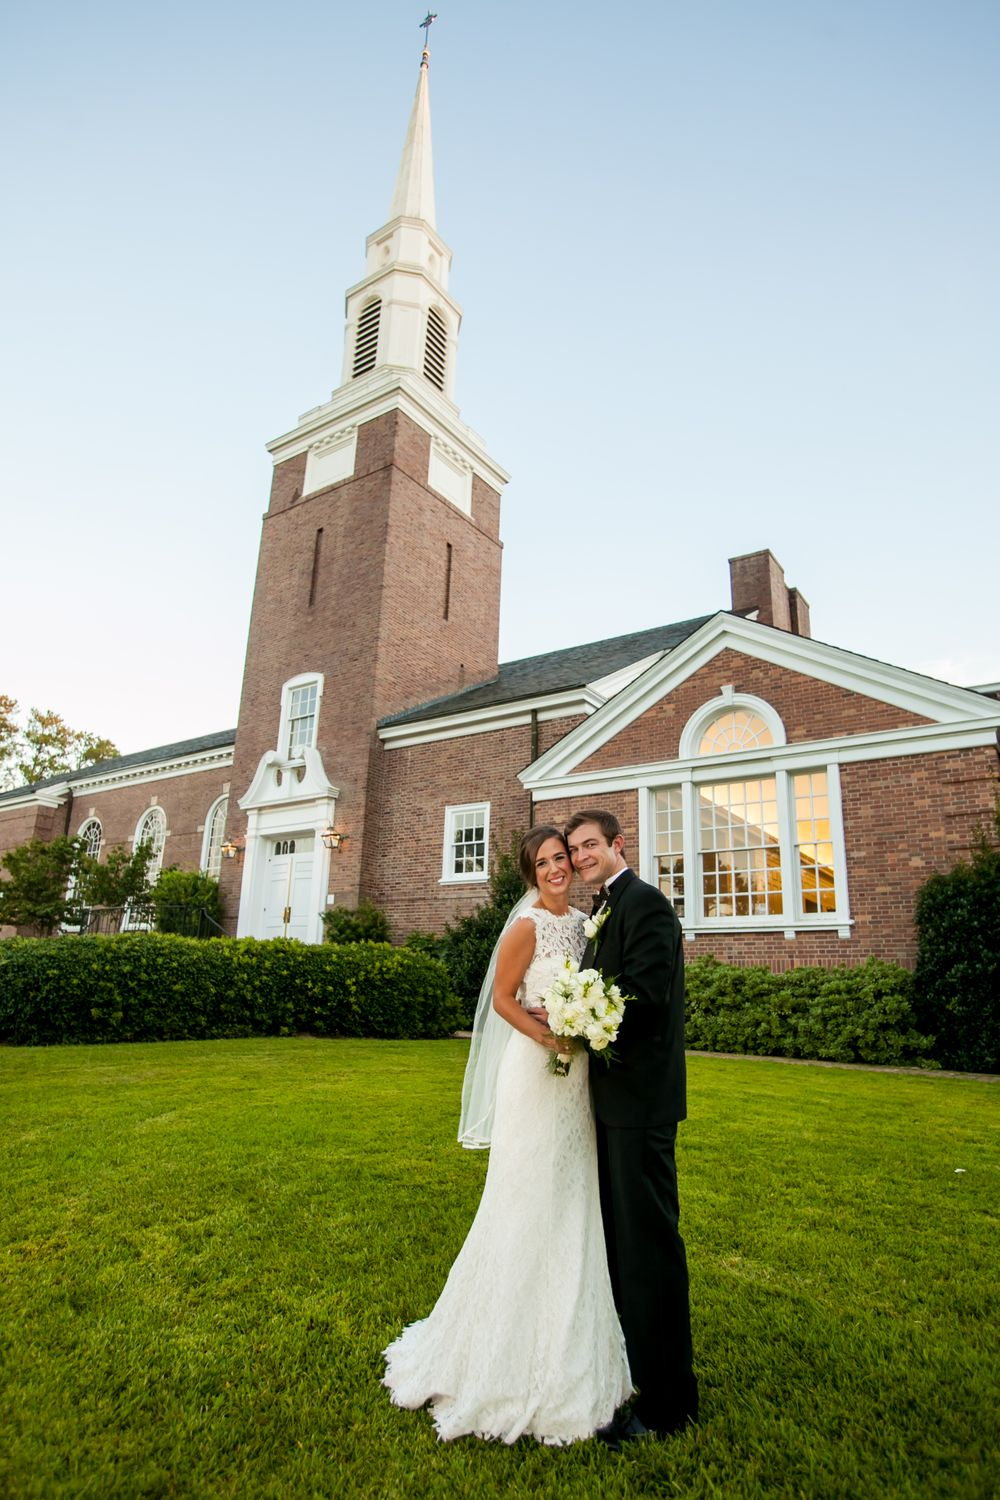 Bride Page and groom John outside after their wedding at Easminster Presbyterian Church in Columbia, SC.